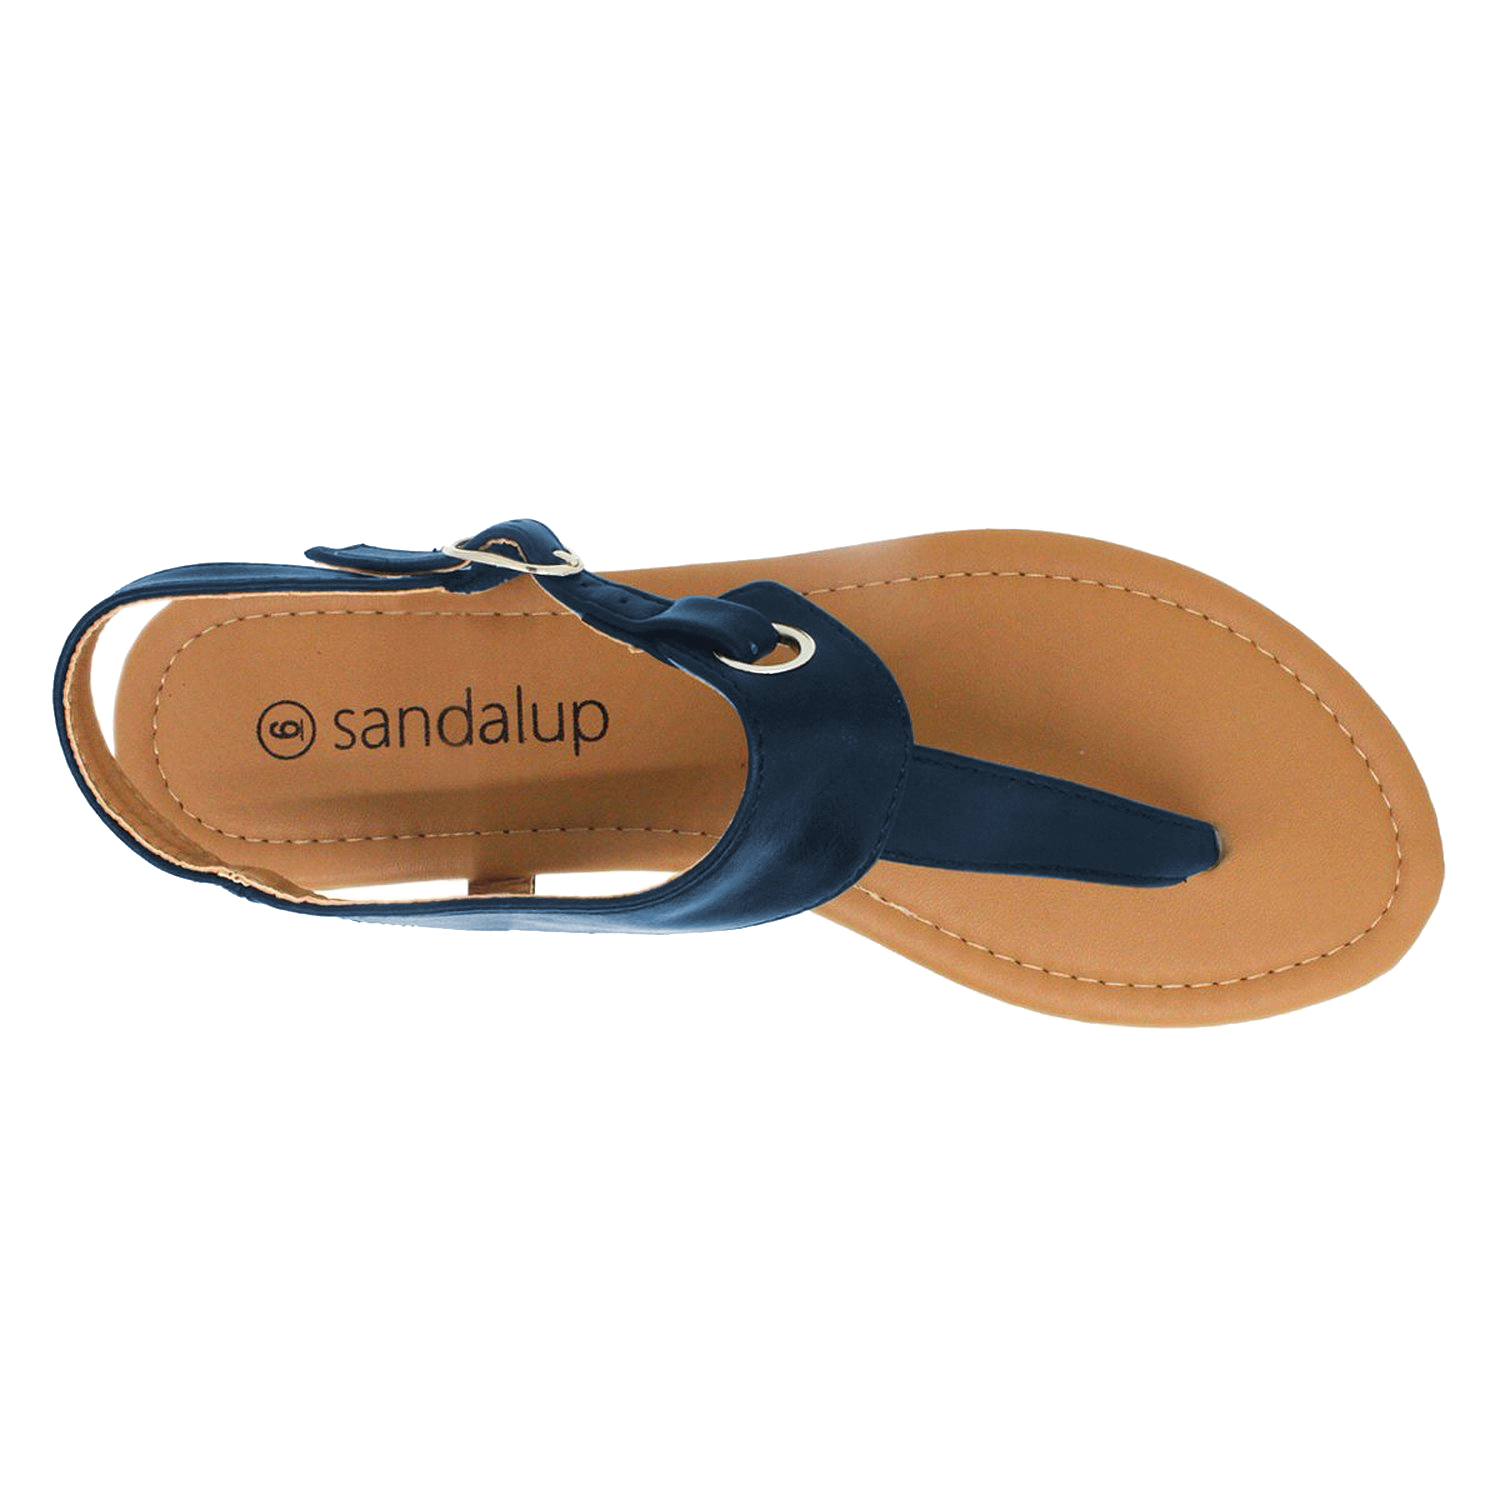 8aebaedfdda6 Sandalup - Newstar Claire Thong Flat Sandals for Beach